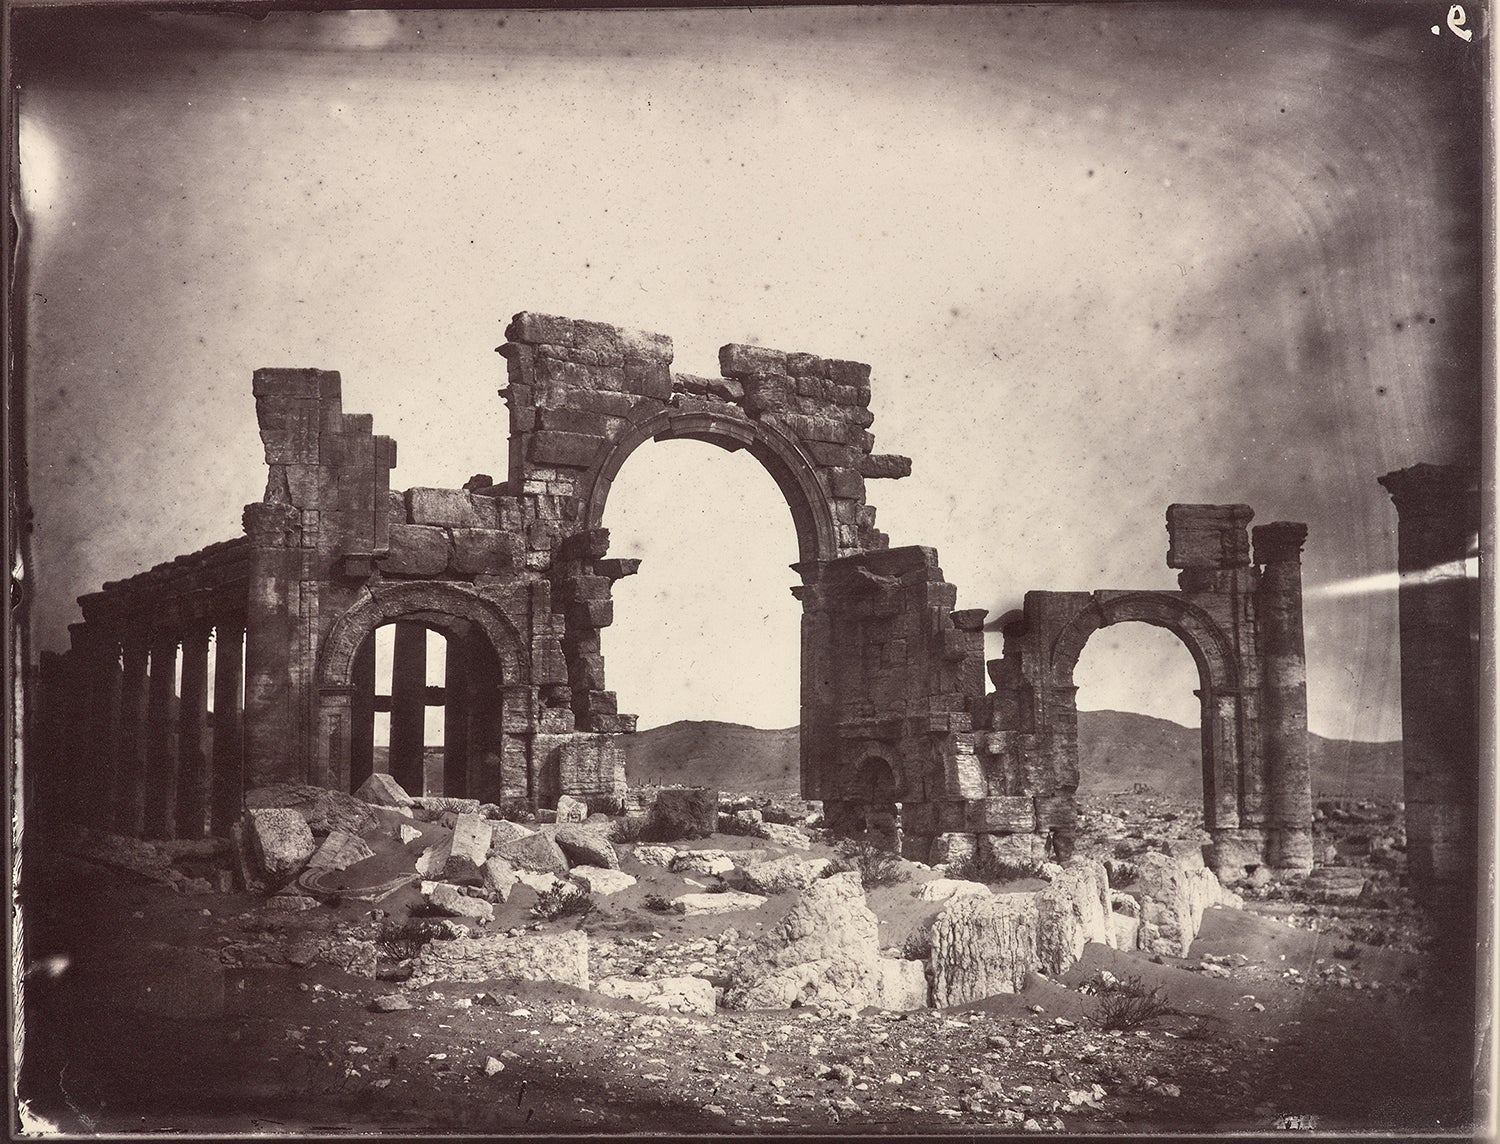 The Getty Research Institute Launches an Online Exhibition of Historical Documentation of Palmyra